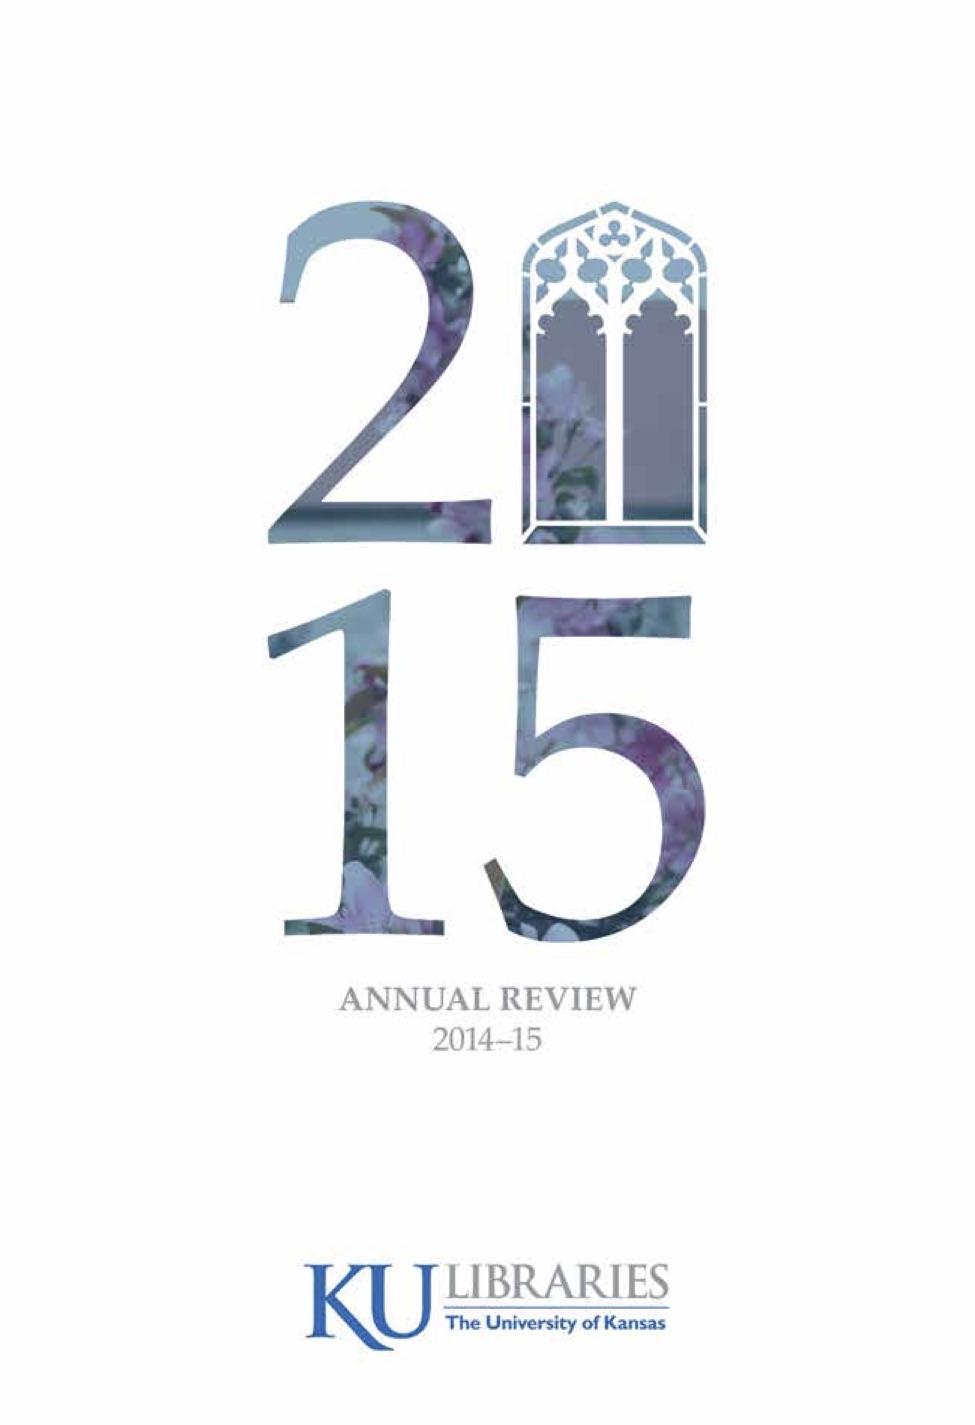 Annual Review 2014-15